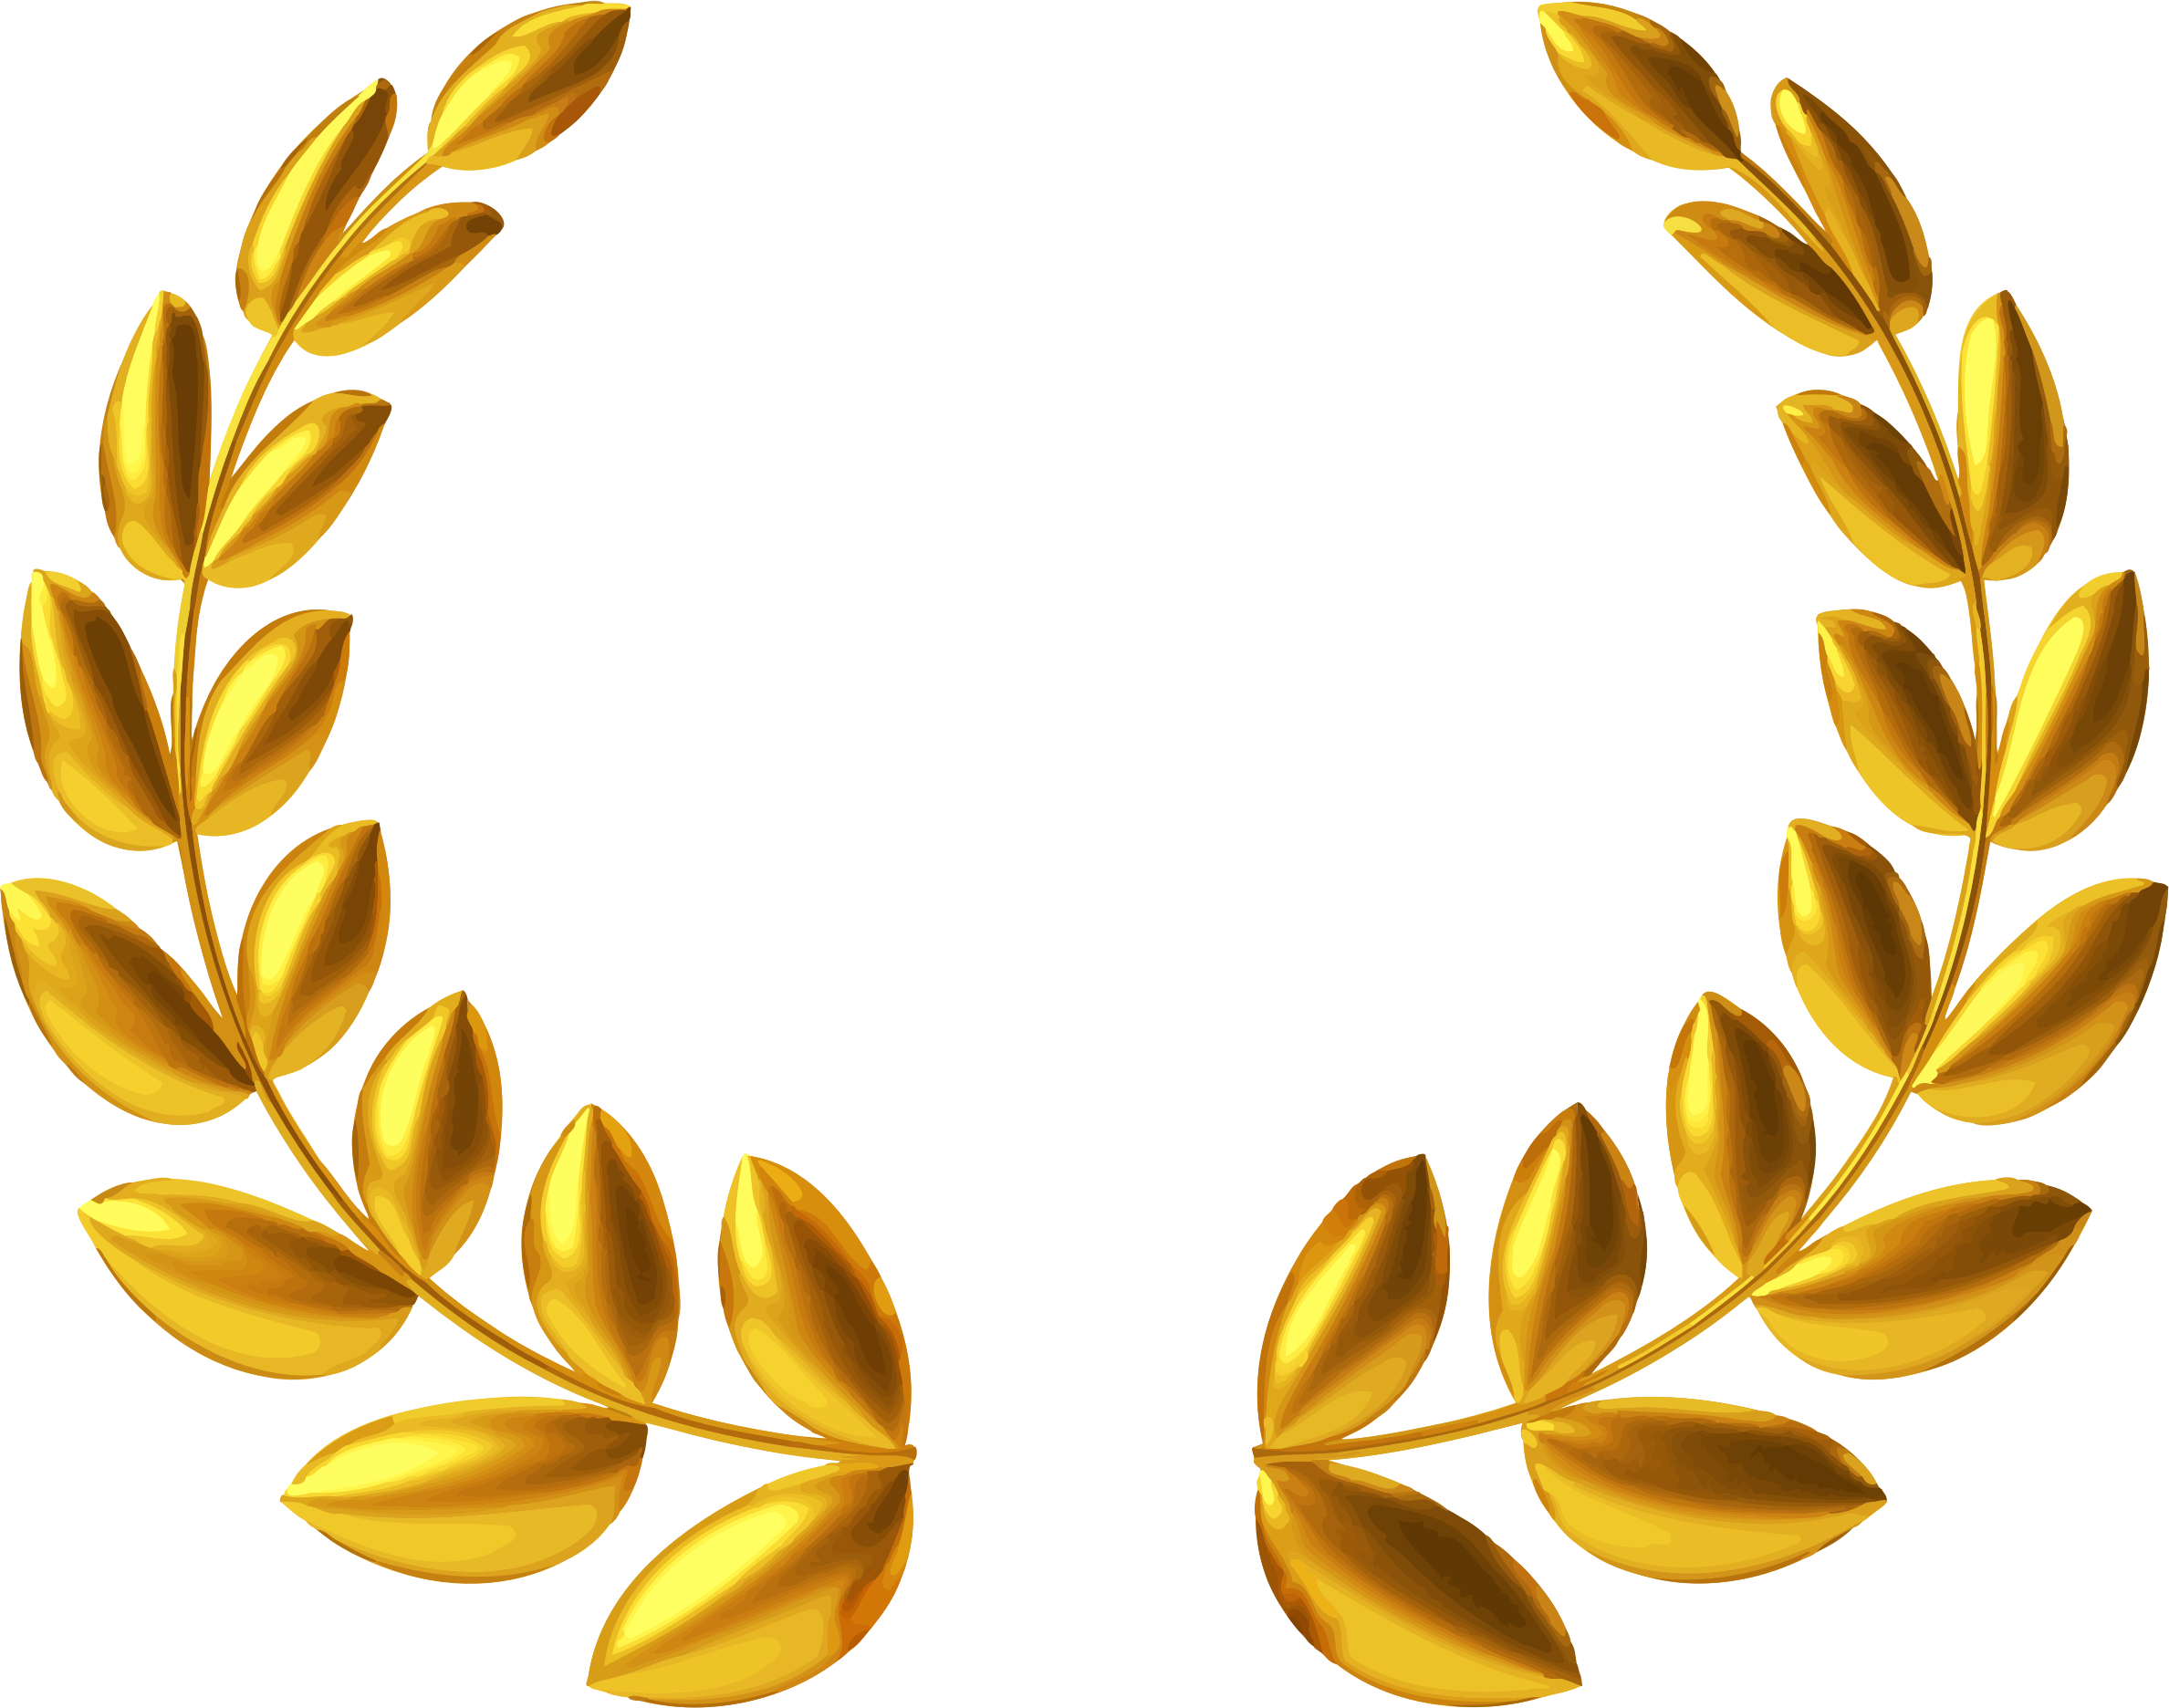 black and white stock Big image png. Gold wreath clipart